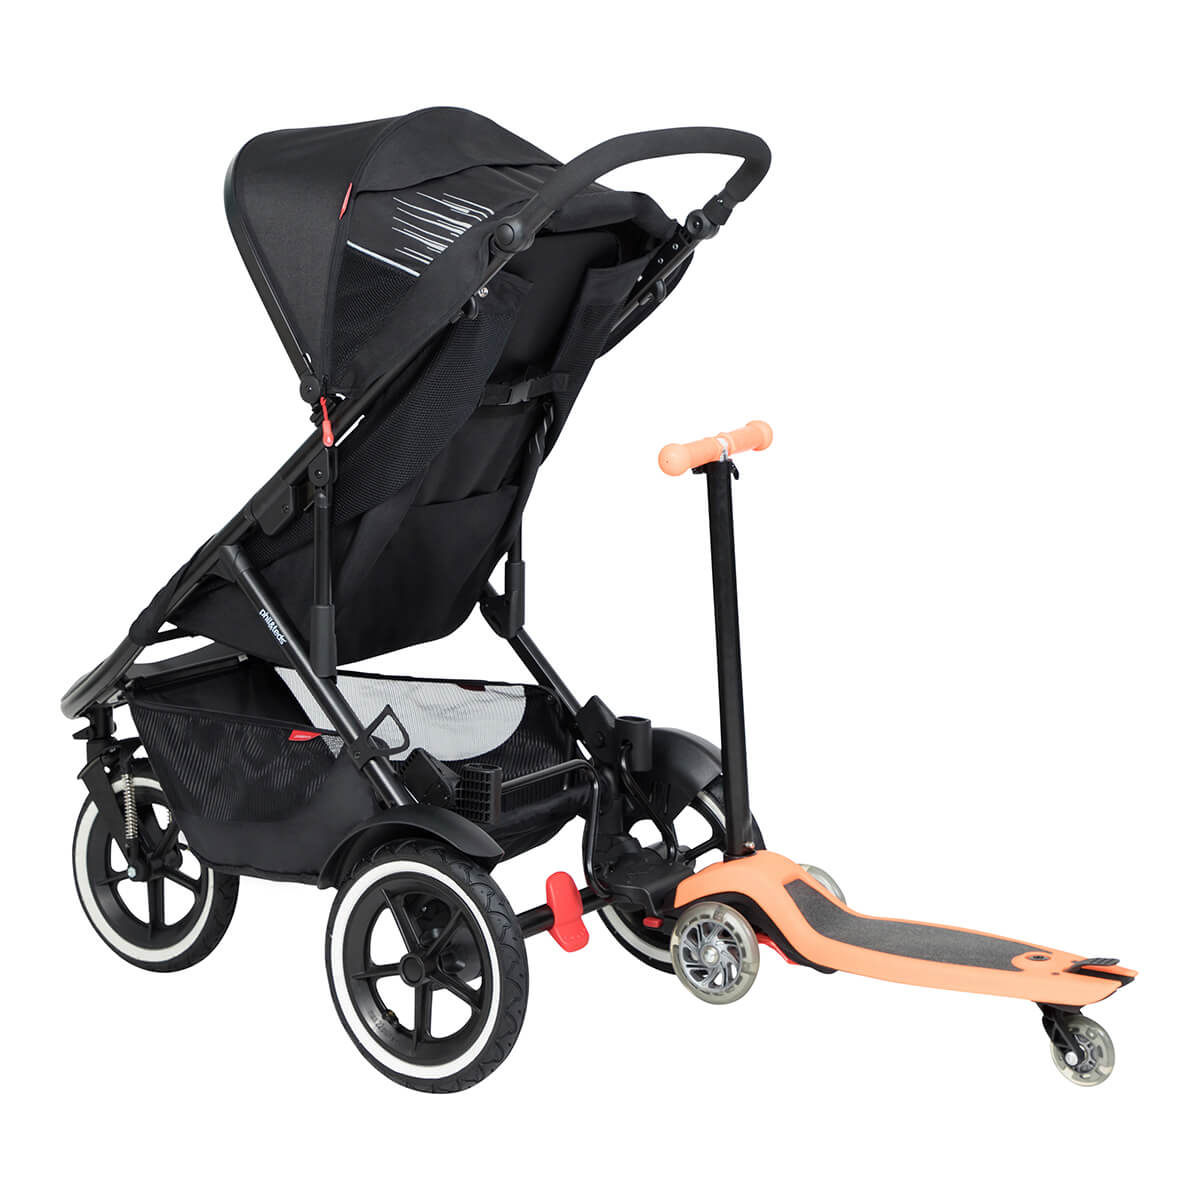 https://cdn.accentuate.io/4546157510761/19119322824809/philteds-sport-buggy-with-freerider-stroller-board-in-rear-v1625778227230.jpg?1200x1200